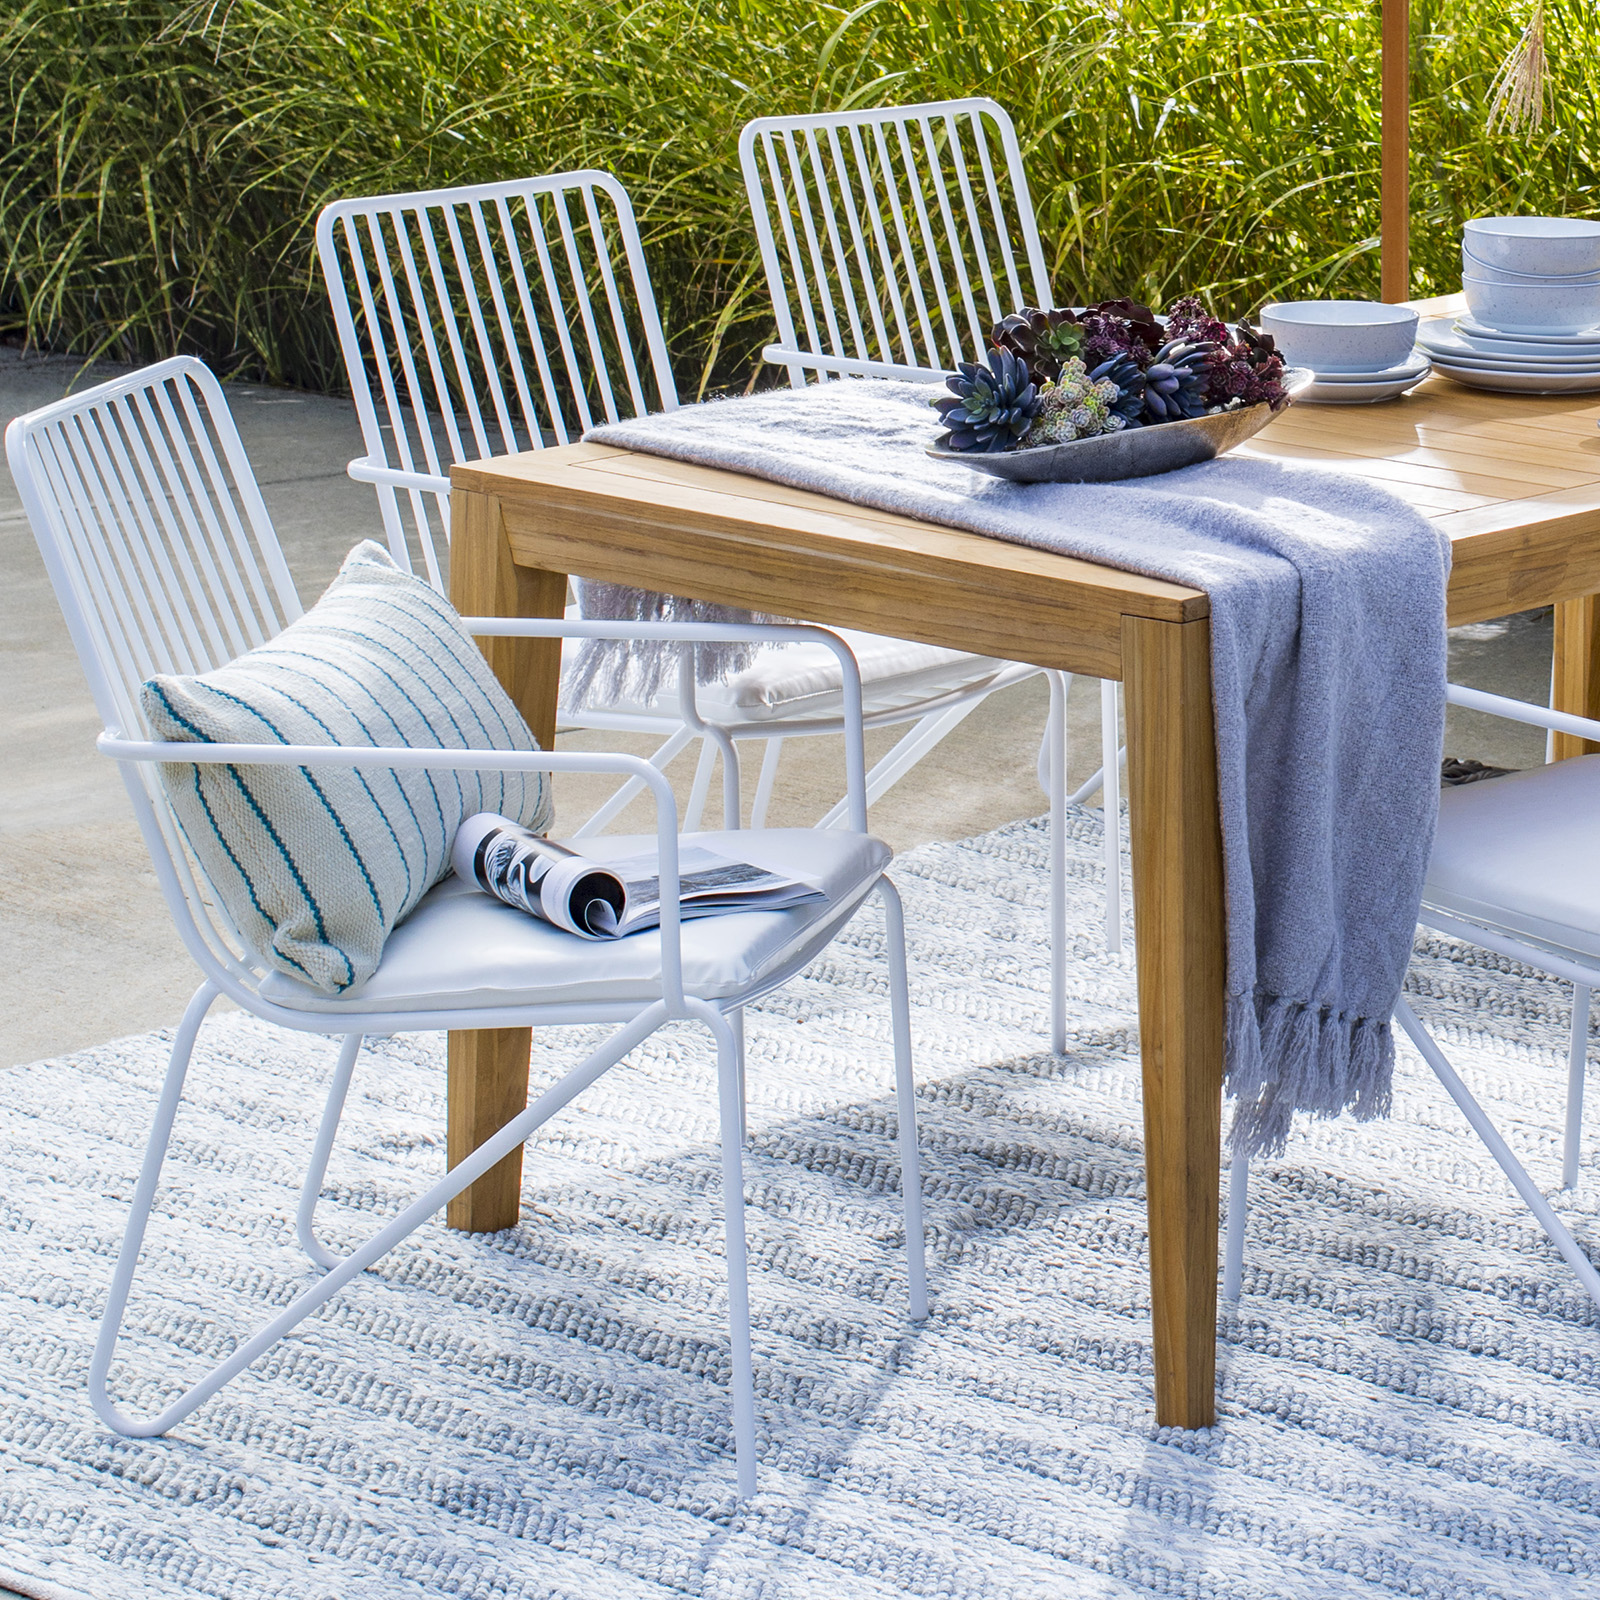 Walmart Patio Furniture Clearance Deals On Chairs